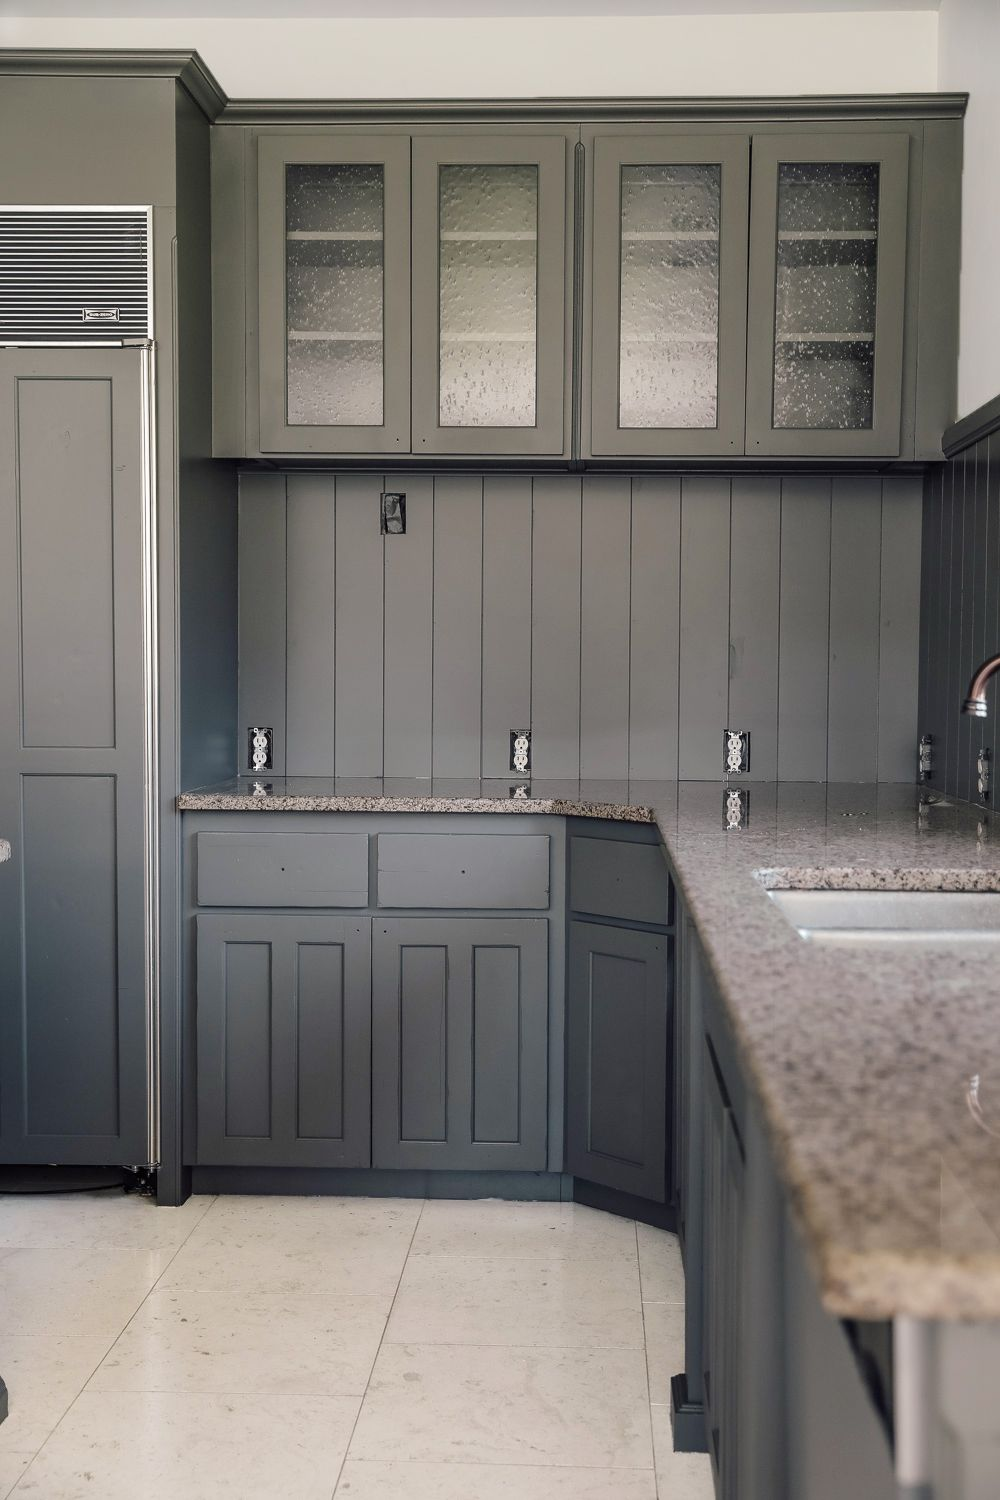 How To Paint Your Cabinets In A Weekend Without Sanding Them In 2020 Painting Cabinets Unfinished Cabinets New Kitchen Designs